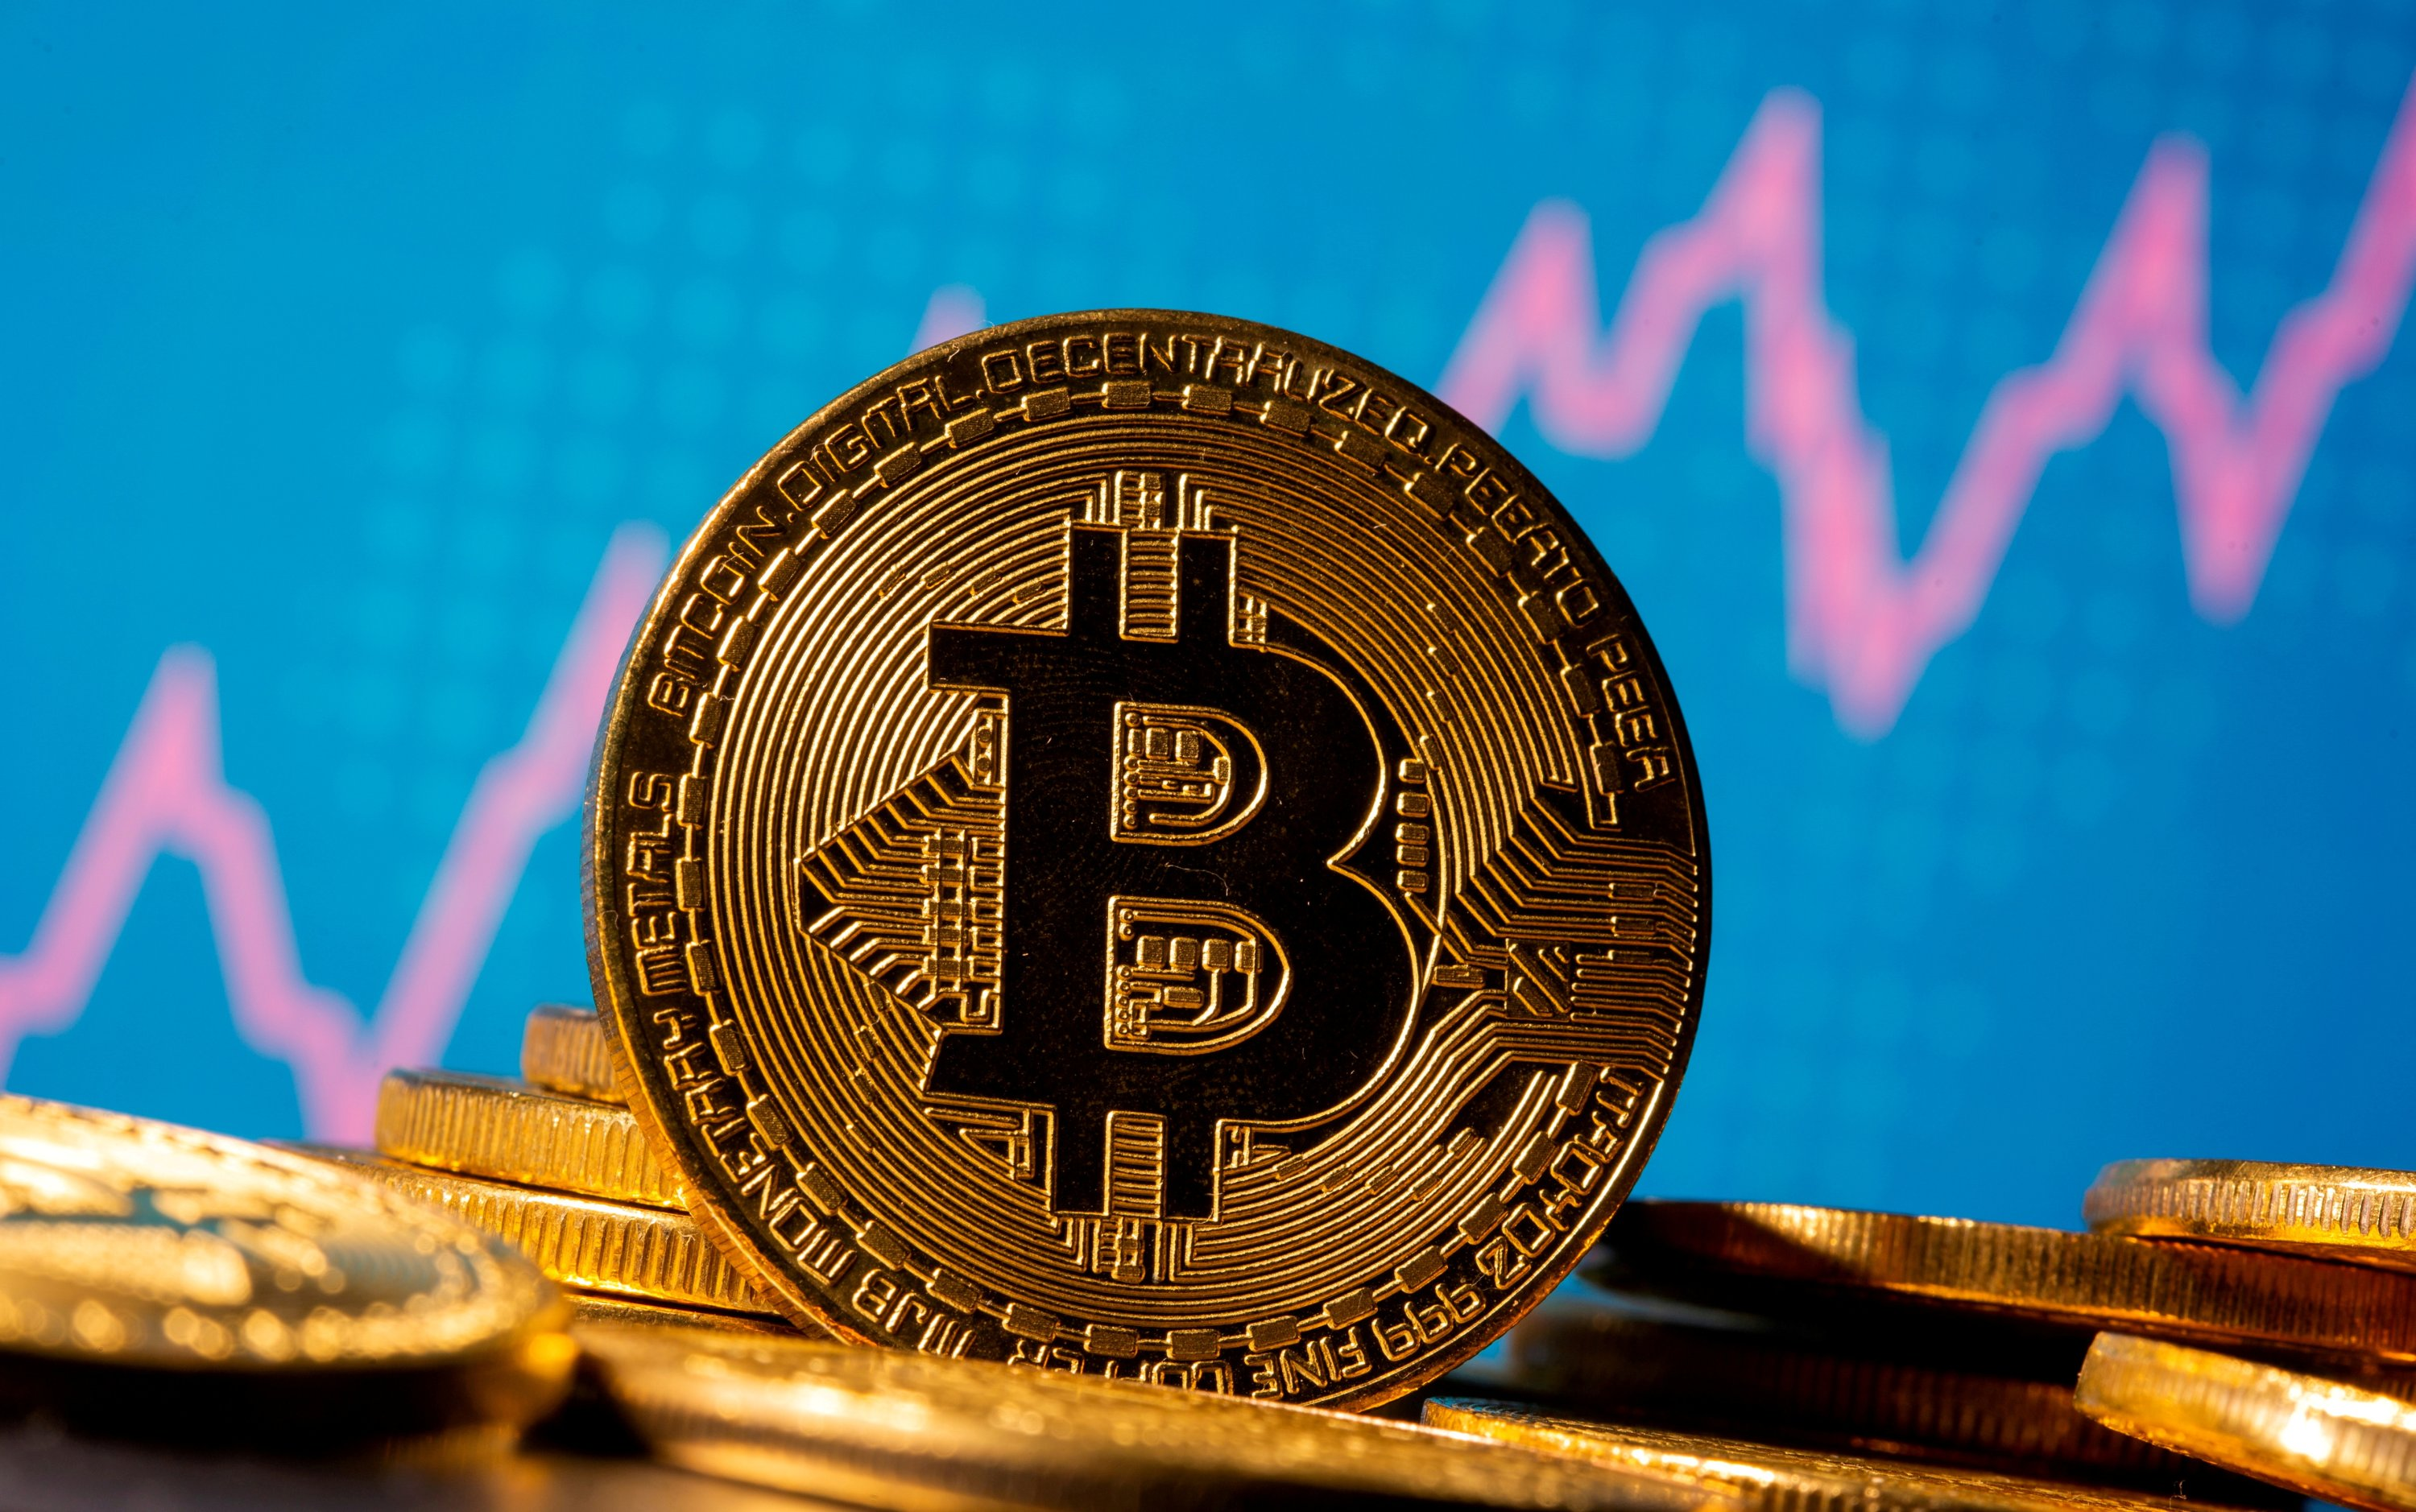 Bitcoin tumbles 20% in sharpest fall since March thumbnail